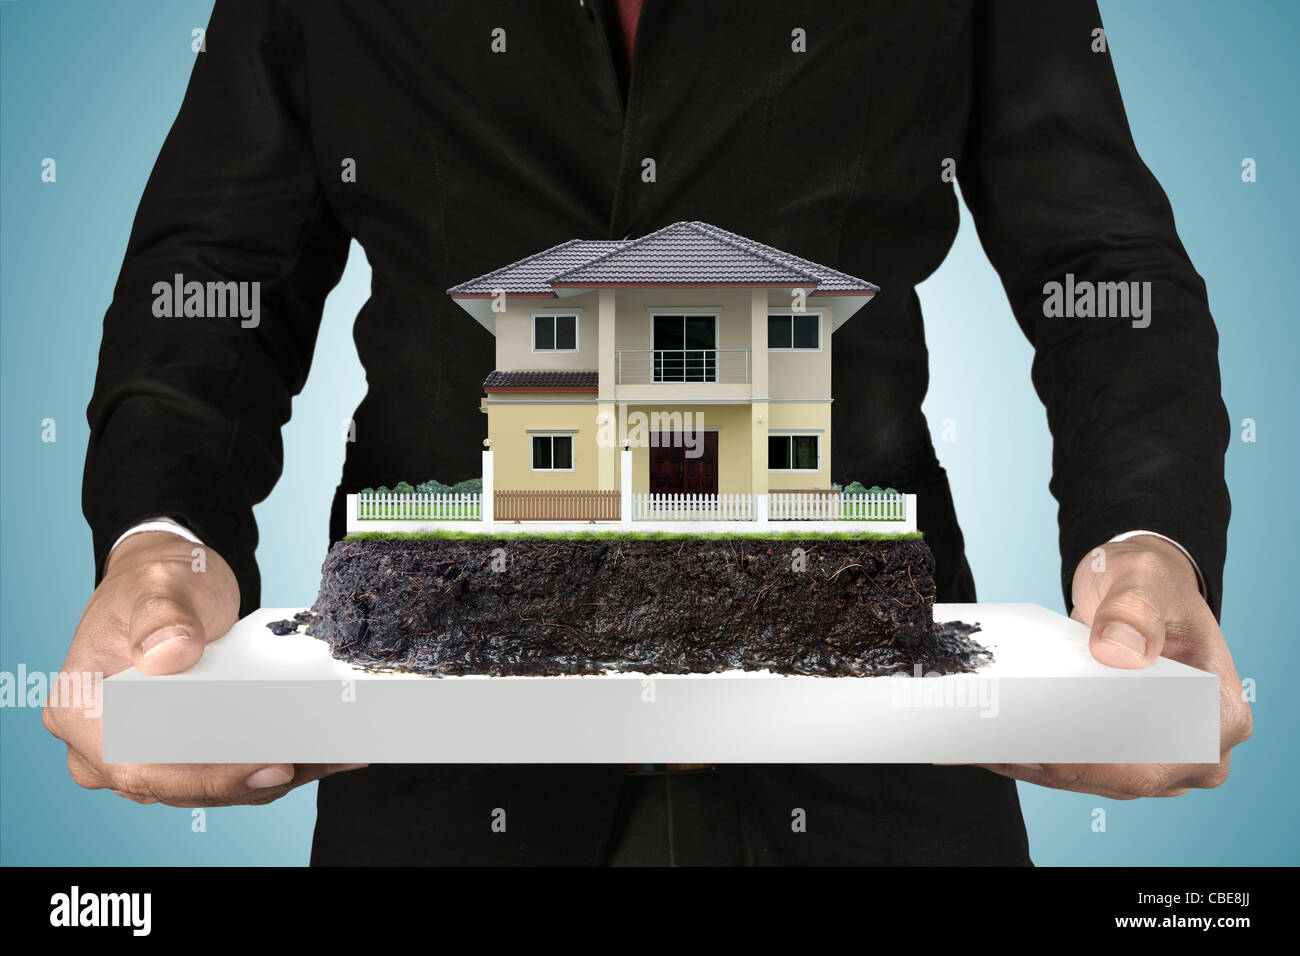 house on the tray.real estate concept - Stock Image